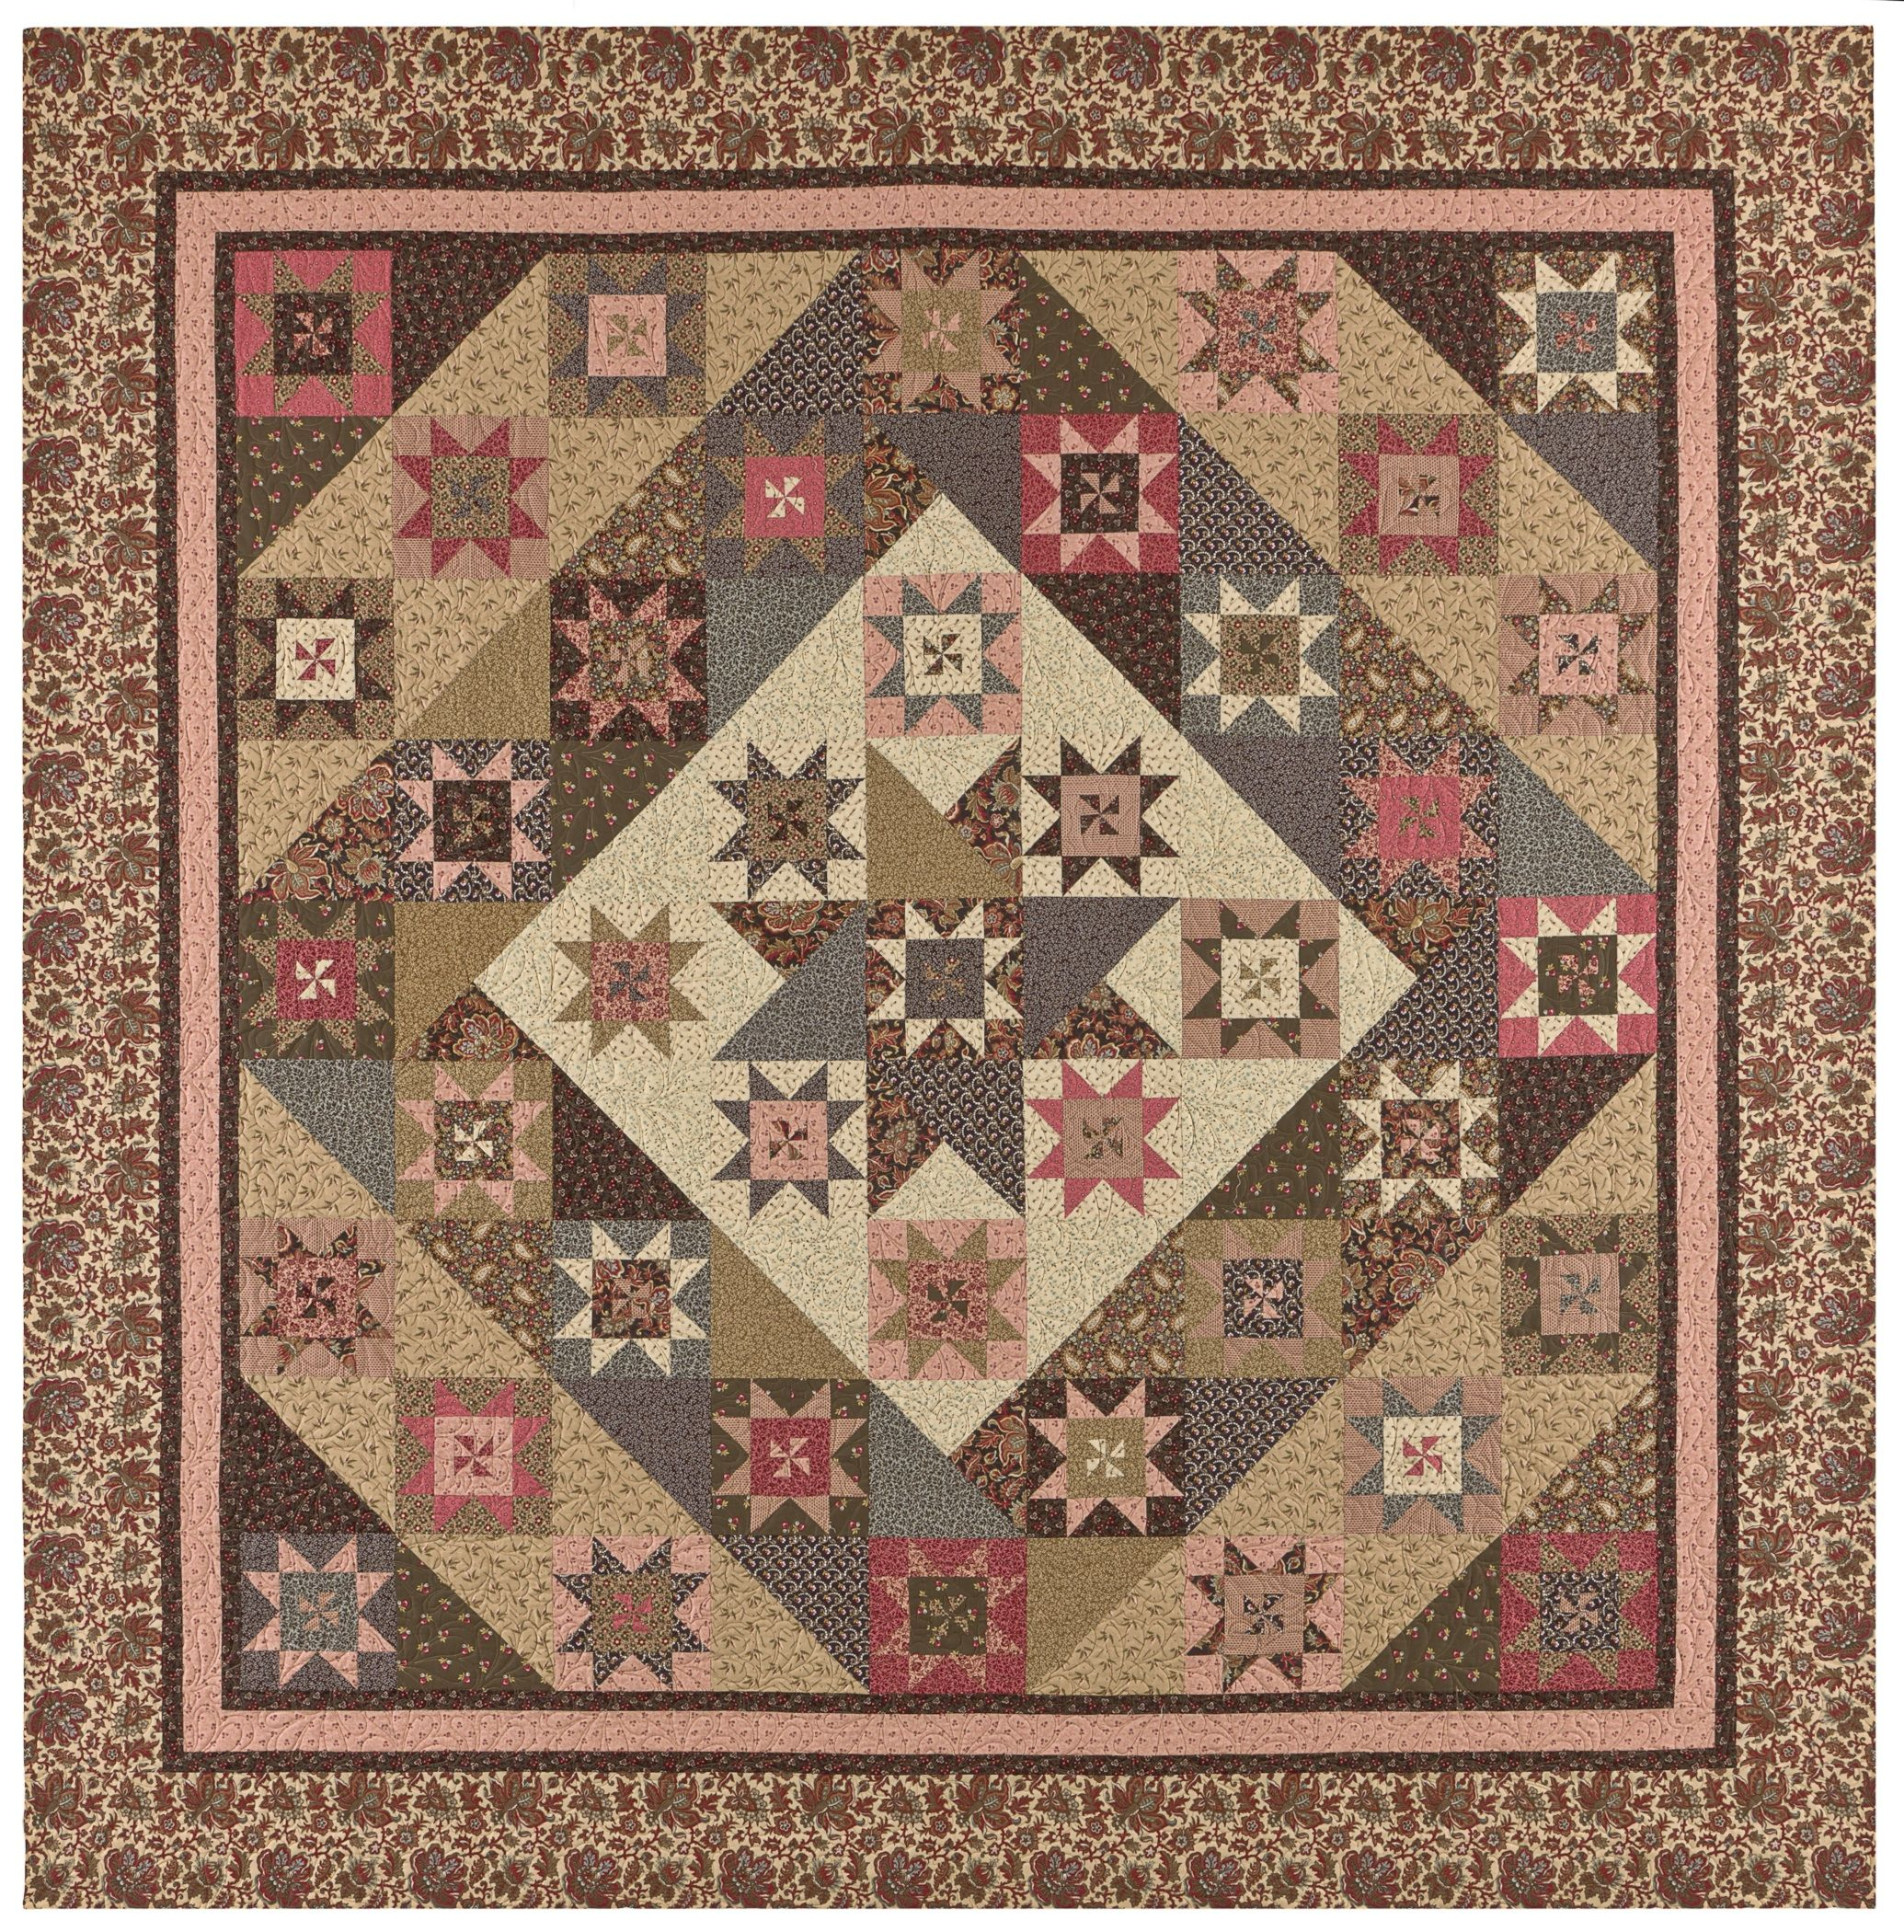 1800's Civil War Era Reproduction Fabric Online Quilt Store ... : quilt online store - Adamdwight.com